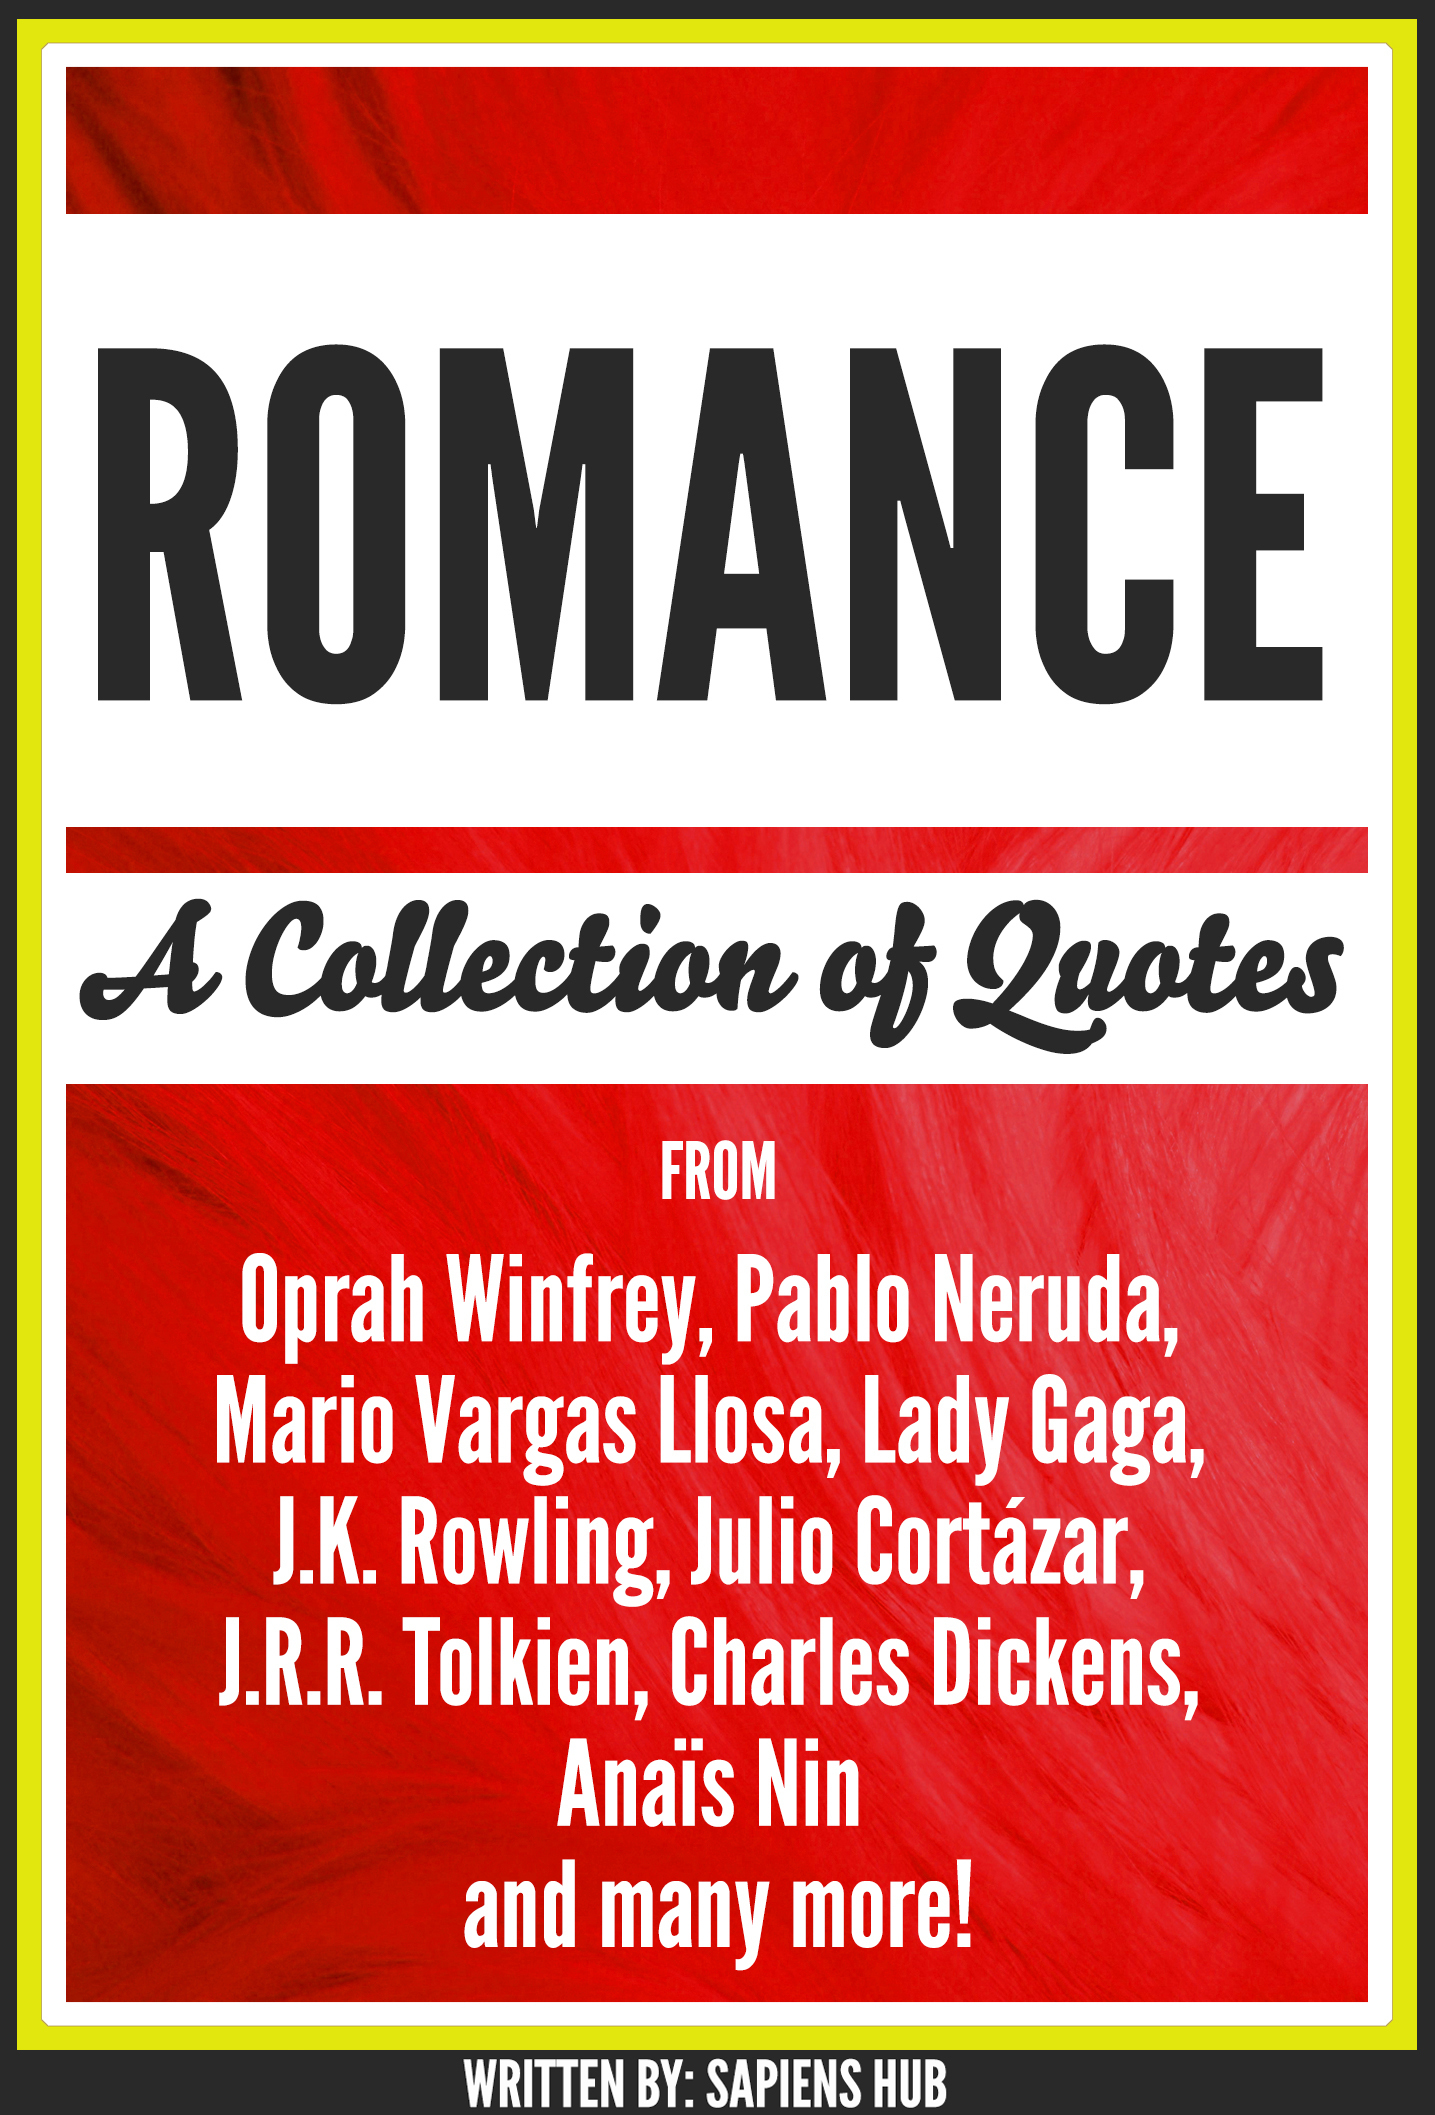 Romance: A Collection Of Quotes From Oprah Winfrey, Pablo Neruda, Mario Vargas Llosa, Lady Gaga, J.K. Rowling, Julio Cortázar, J.R.R. Tolkien, Charles Dickens, Anaïs Nin And Many More!